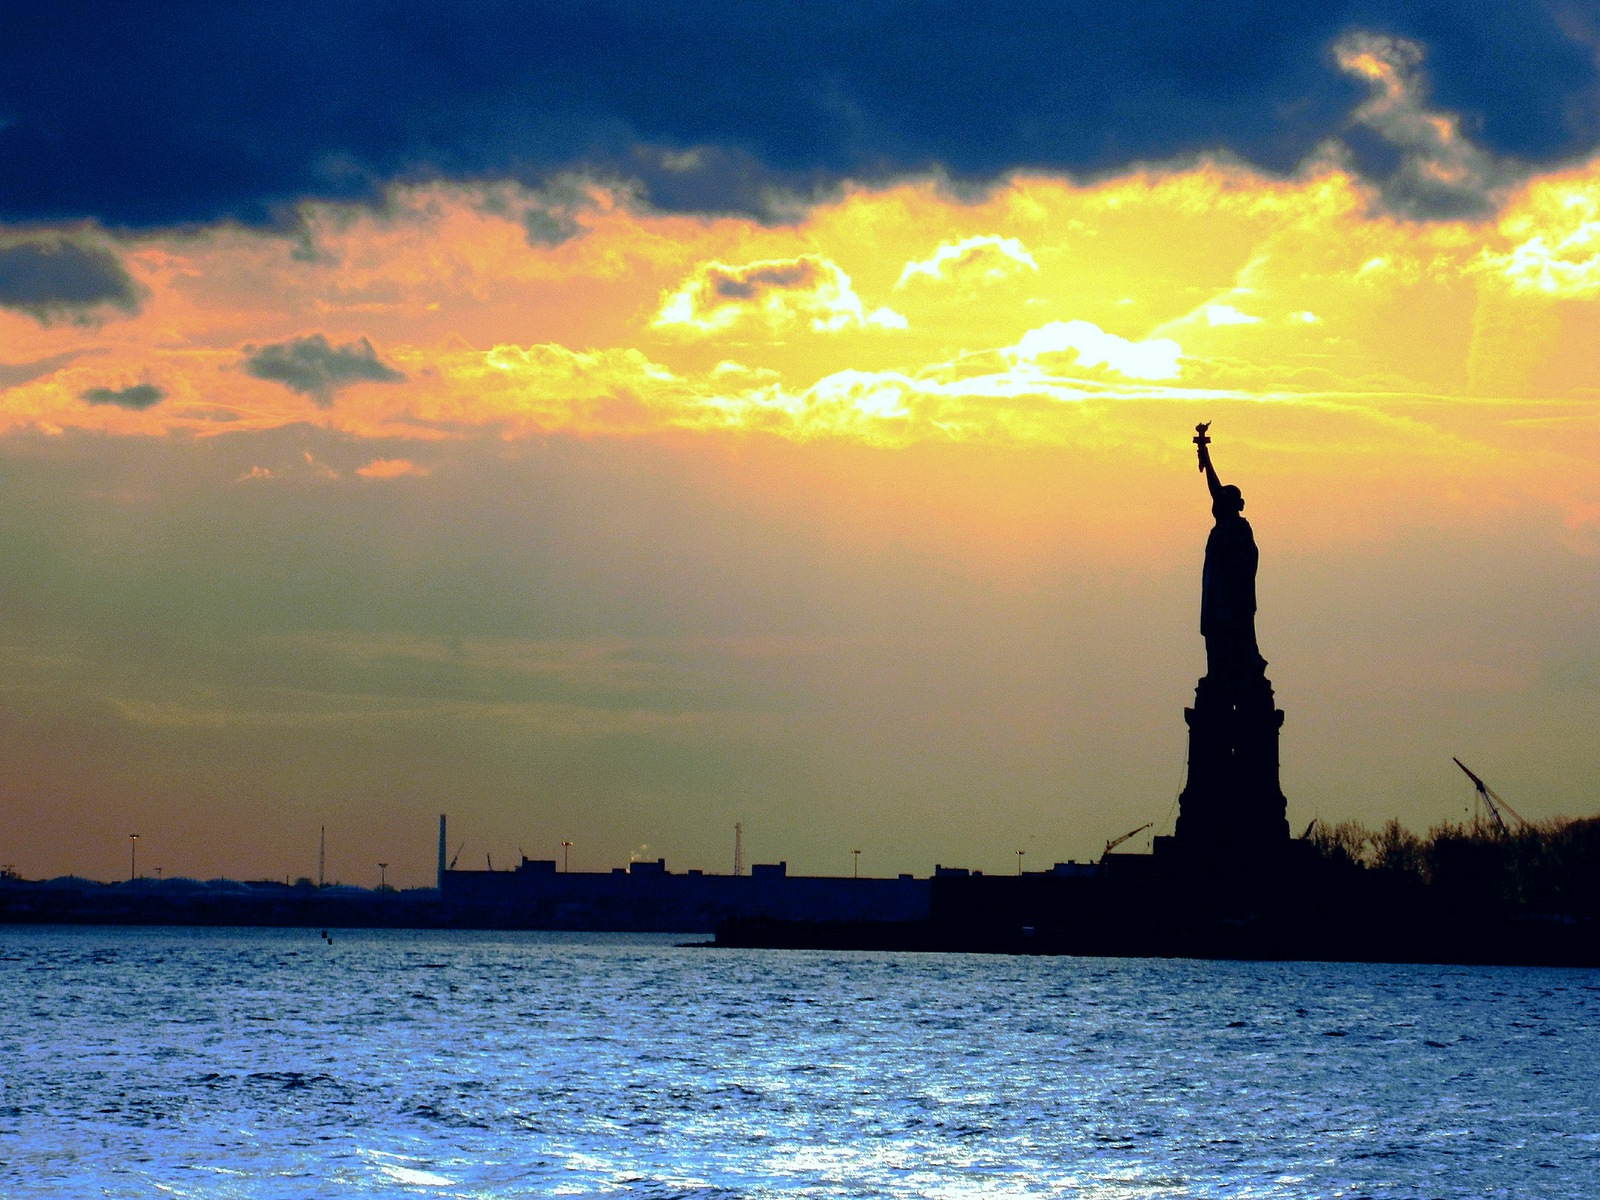 Statue of Liberty at Sunset by Frederico Domondon